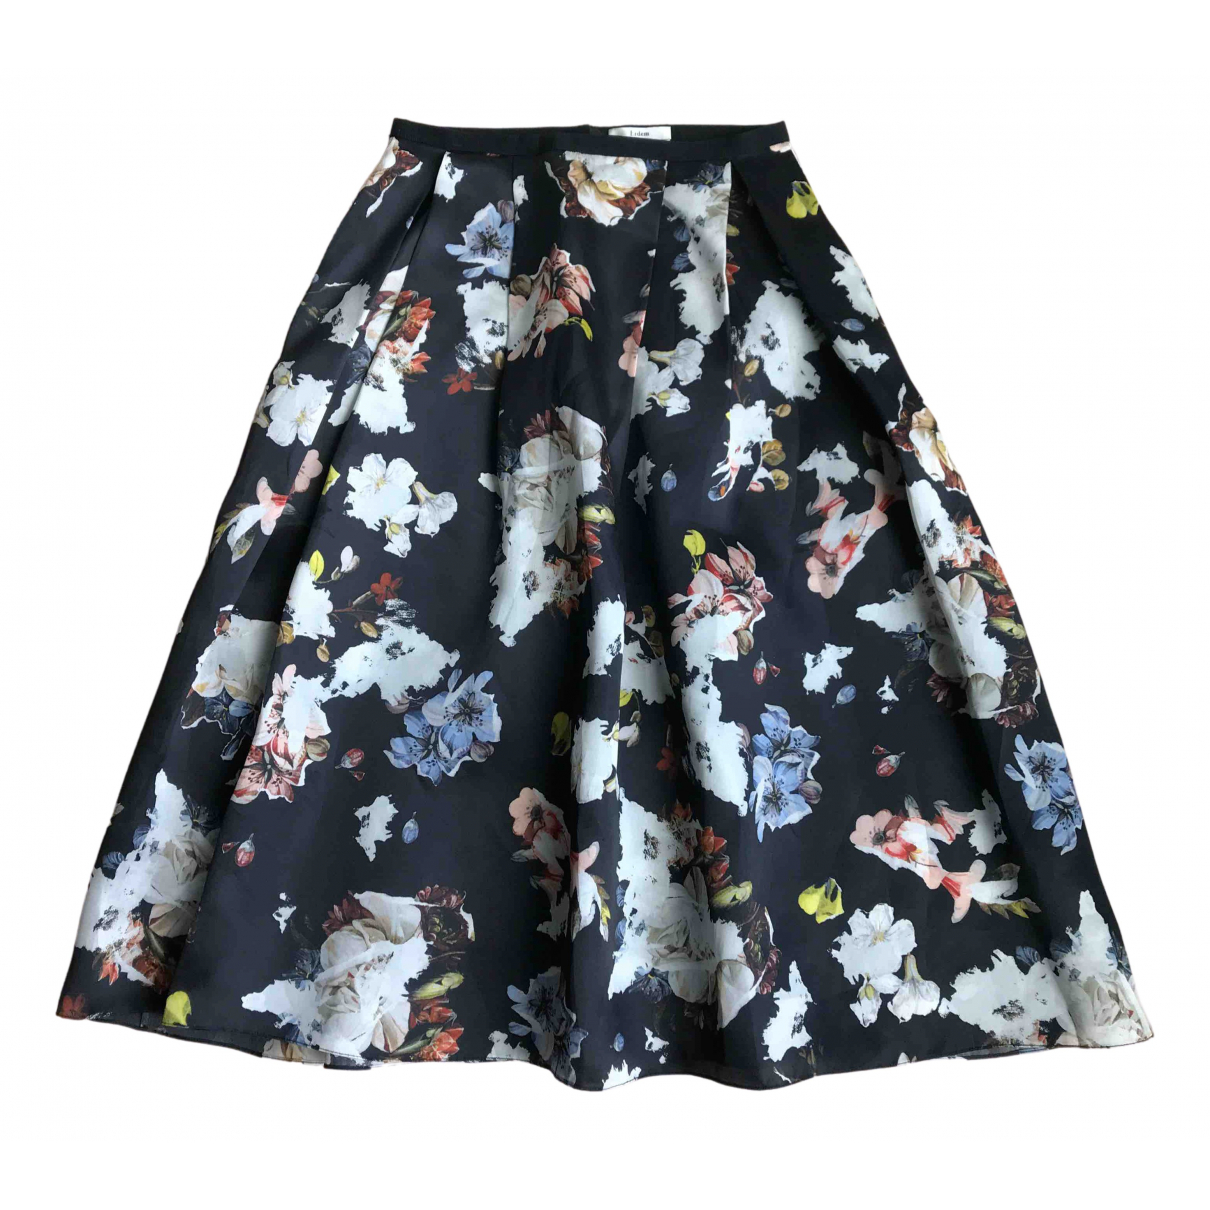 Erdem \N Black Silk skirt for Women 10 UK